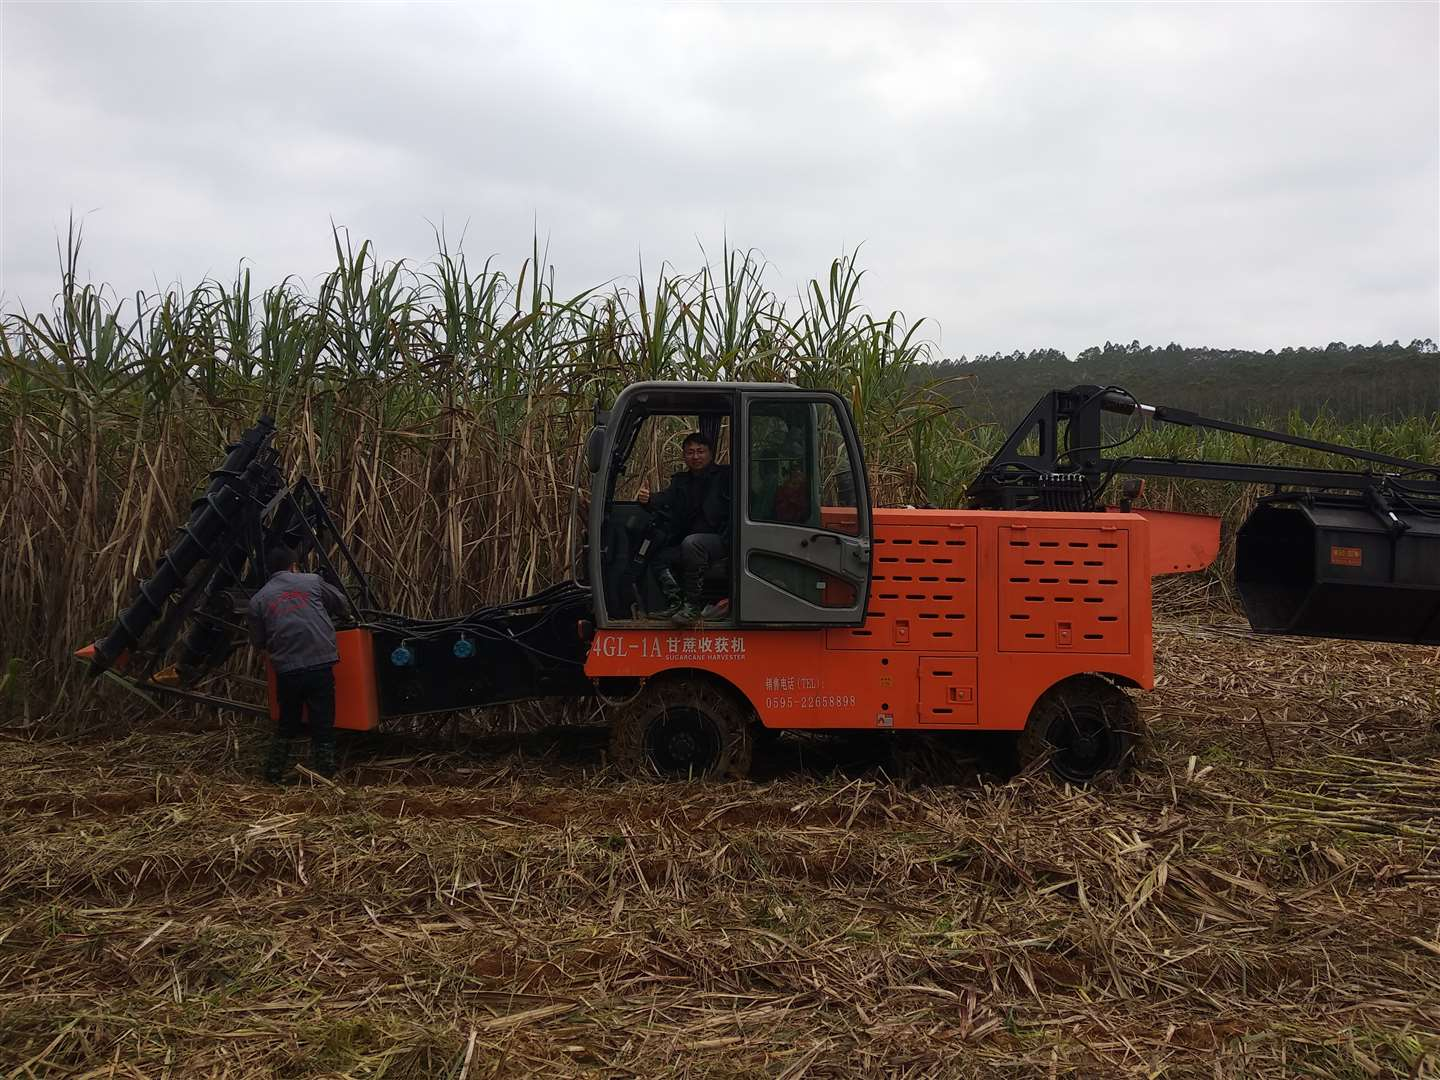 JingGong 4GL-1A sugarcane harvester in Philippines